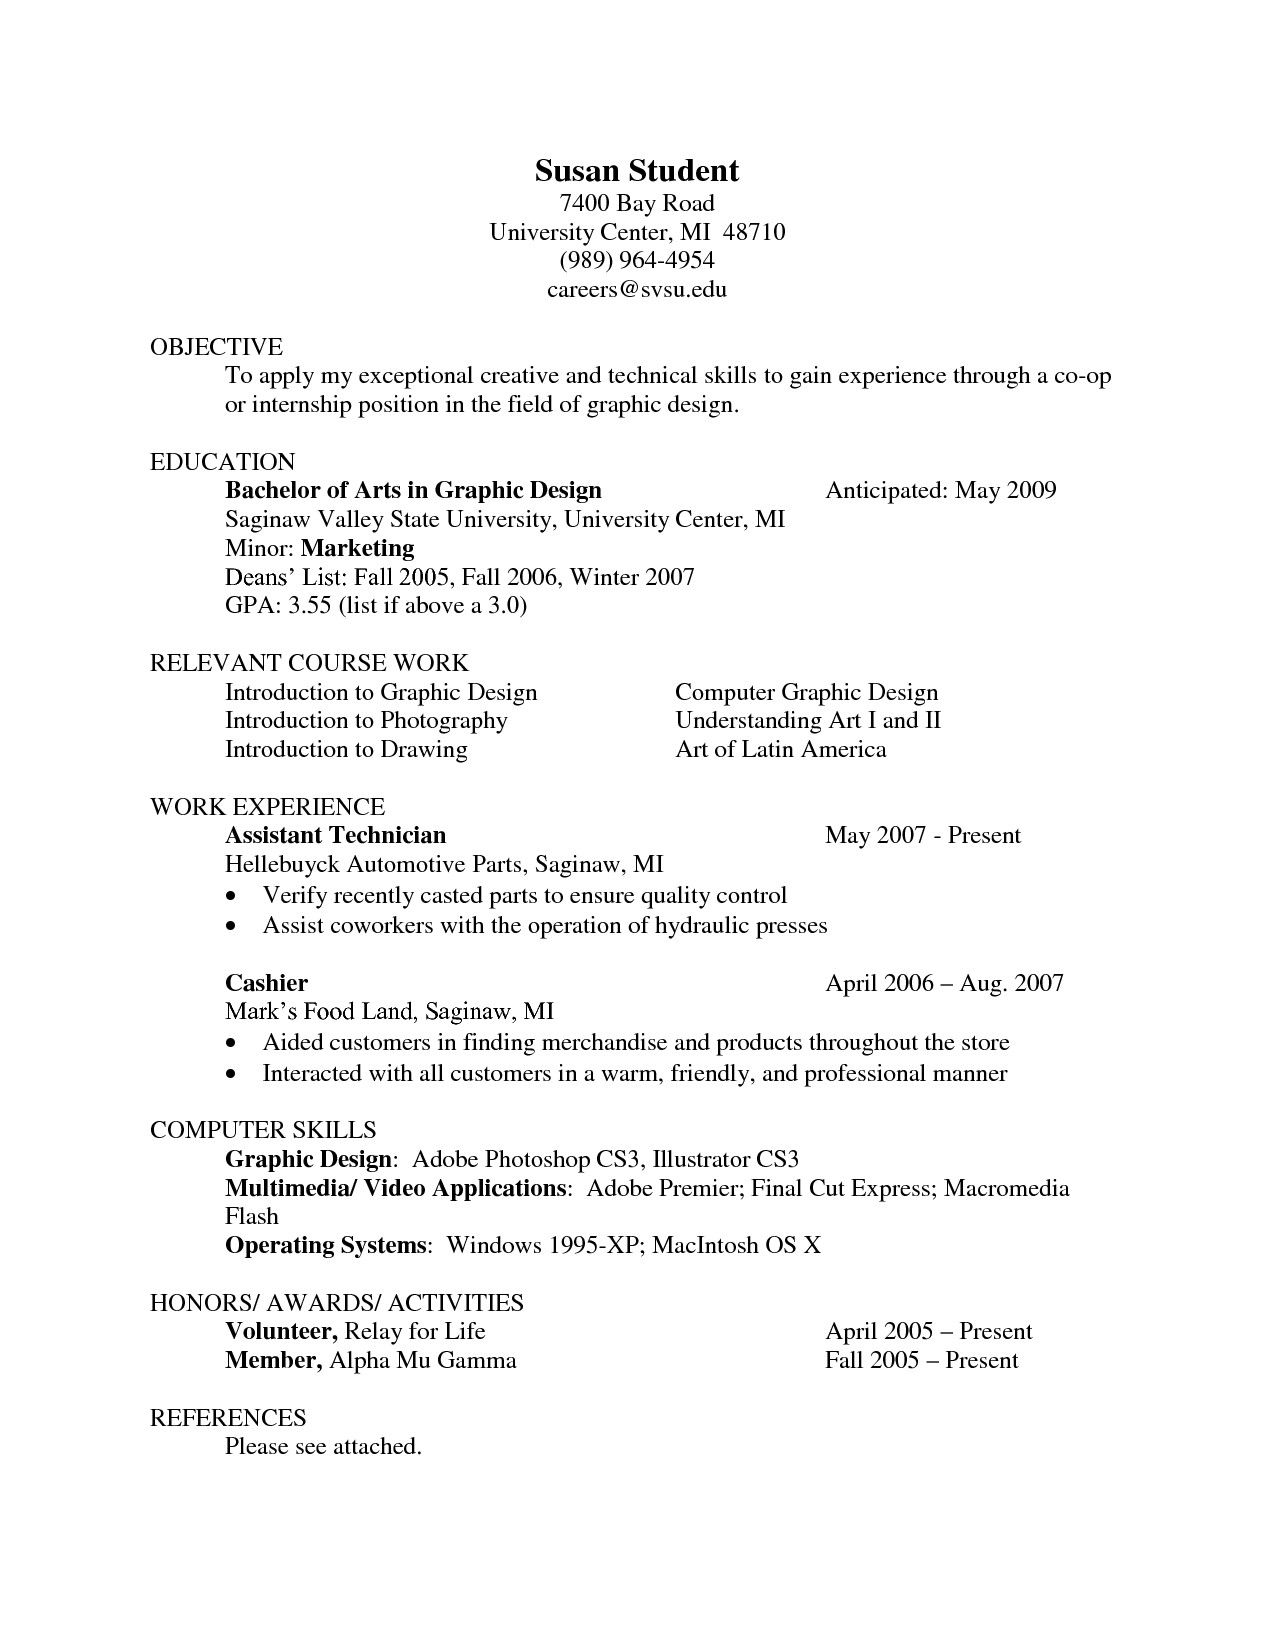 How To List Technical Skills On Resume Unique Resume Examples References  Pinterest  Resume Examples